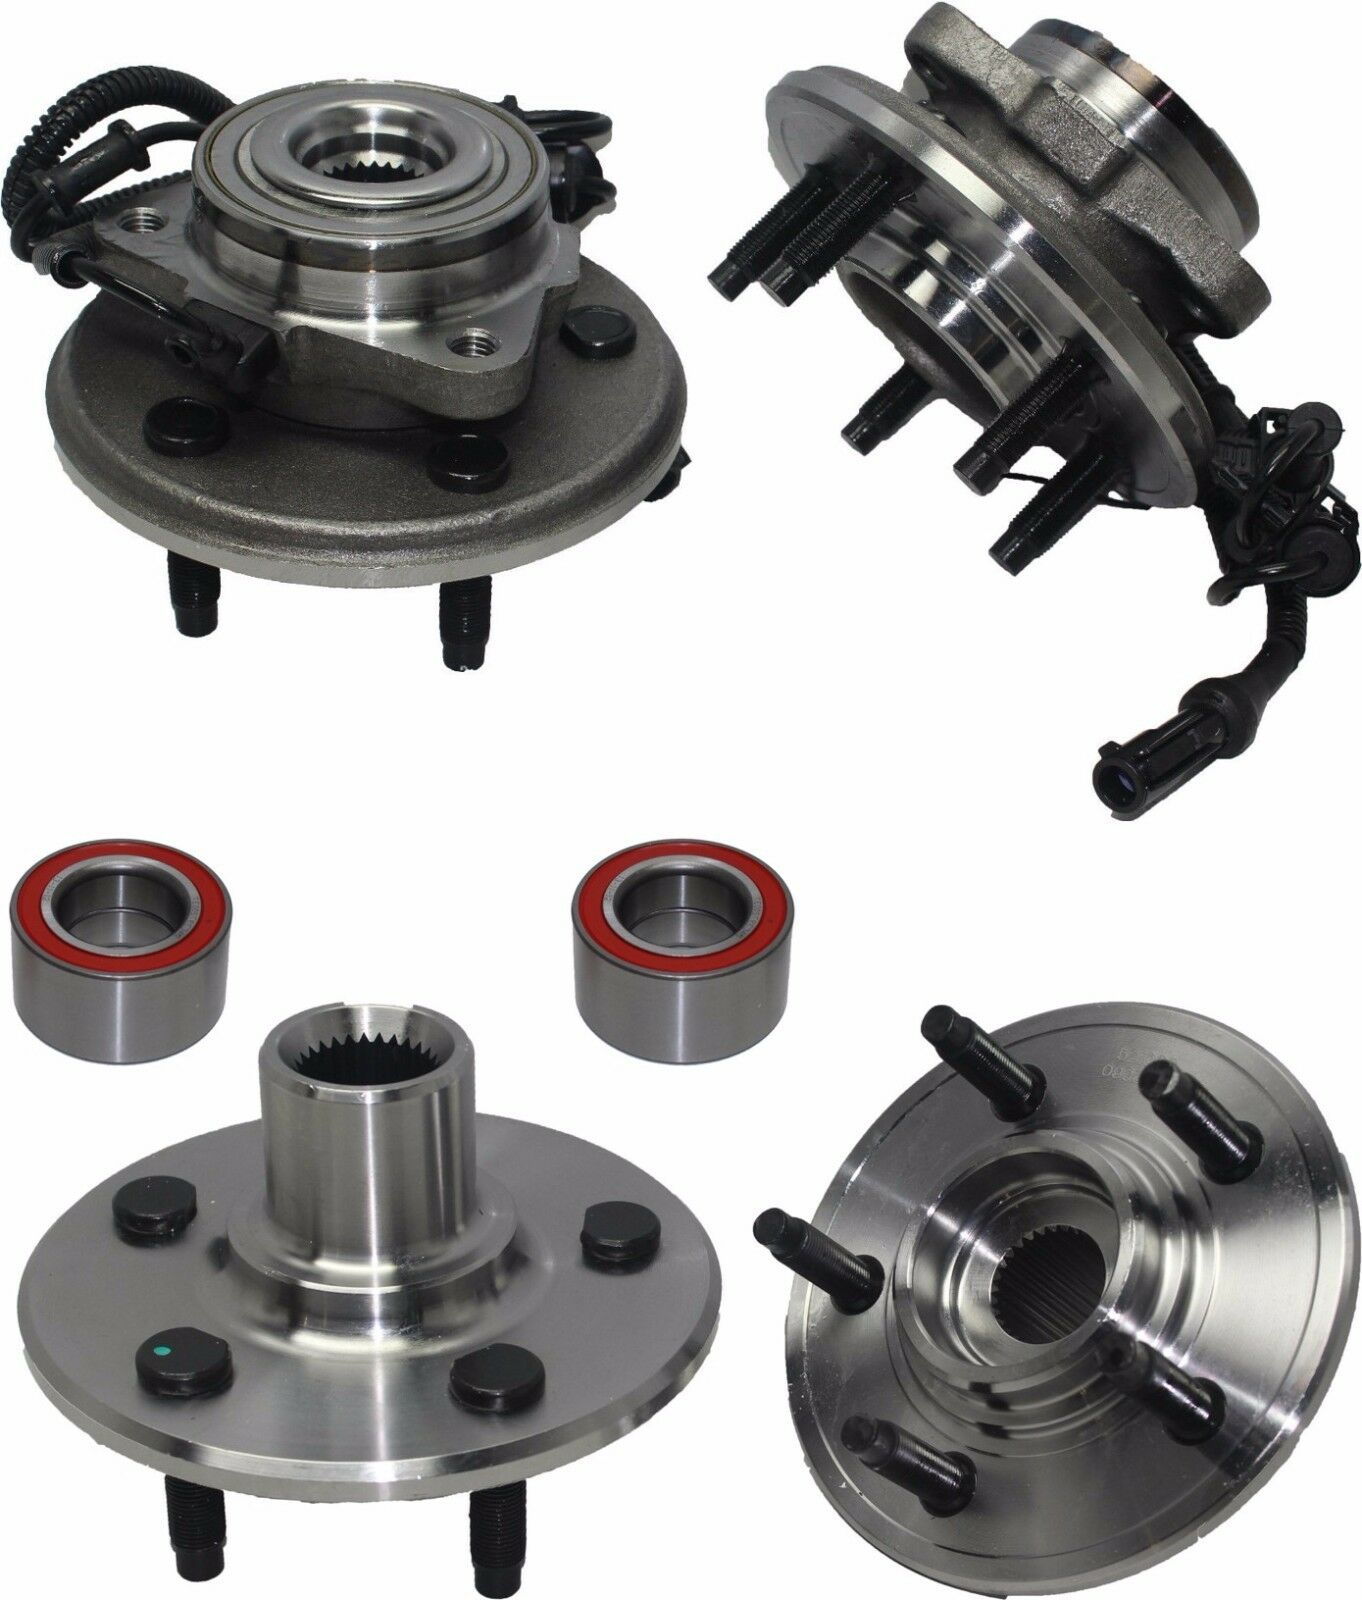 (4) New Front & Rear Wheel Hub and Bearing Assembly for LINCOLN AVIATOR (03-05)